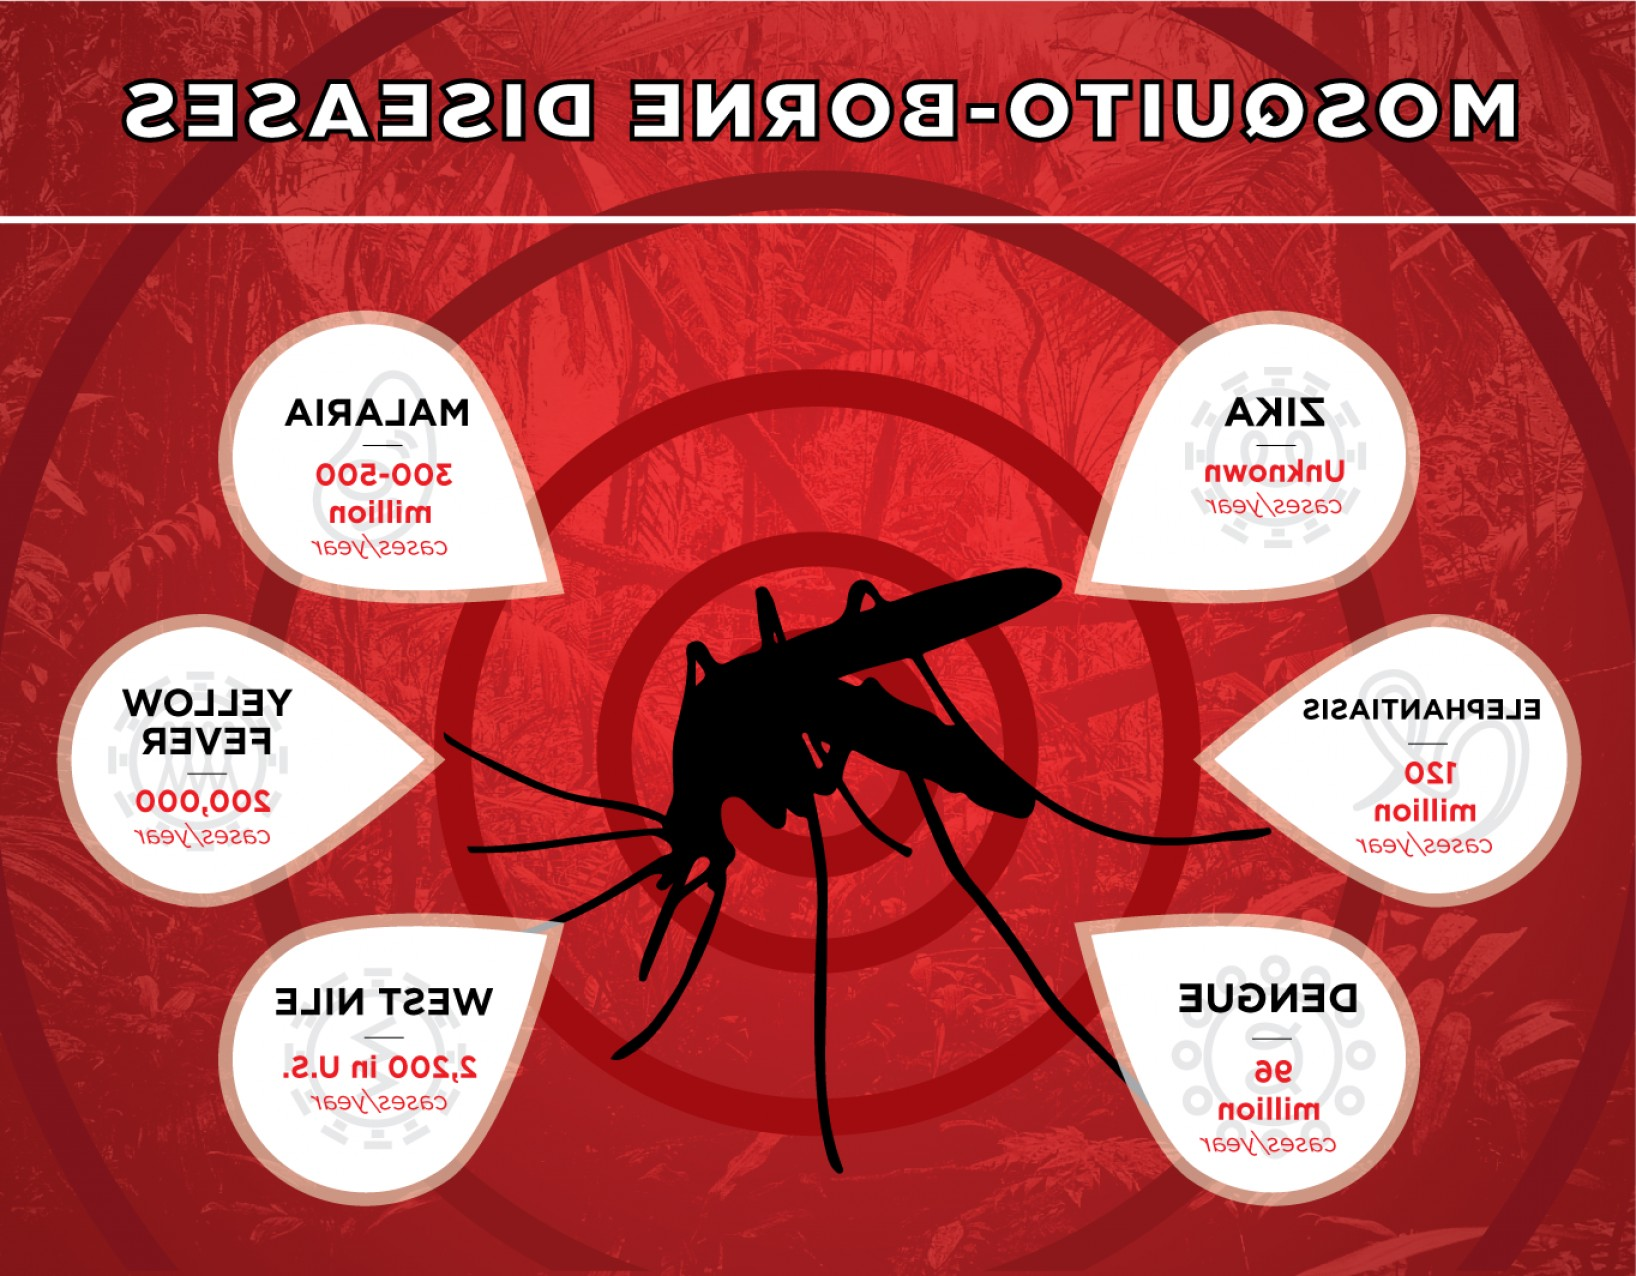 Vectors Diseases Caused By: Mosquito Borne Diseases Symptoms Prevention And Treatment